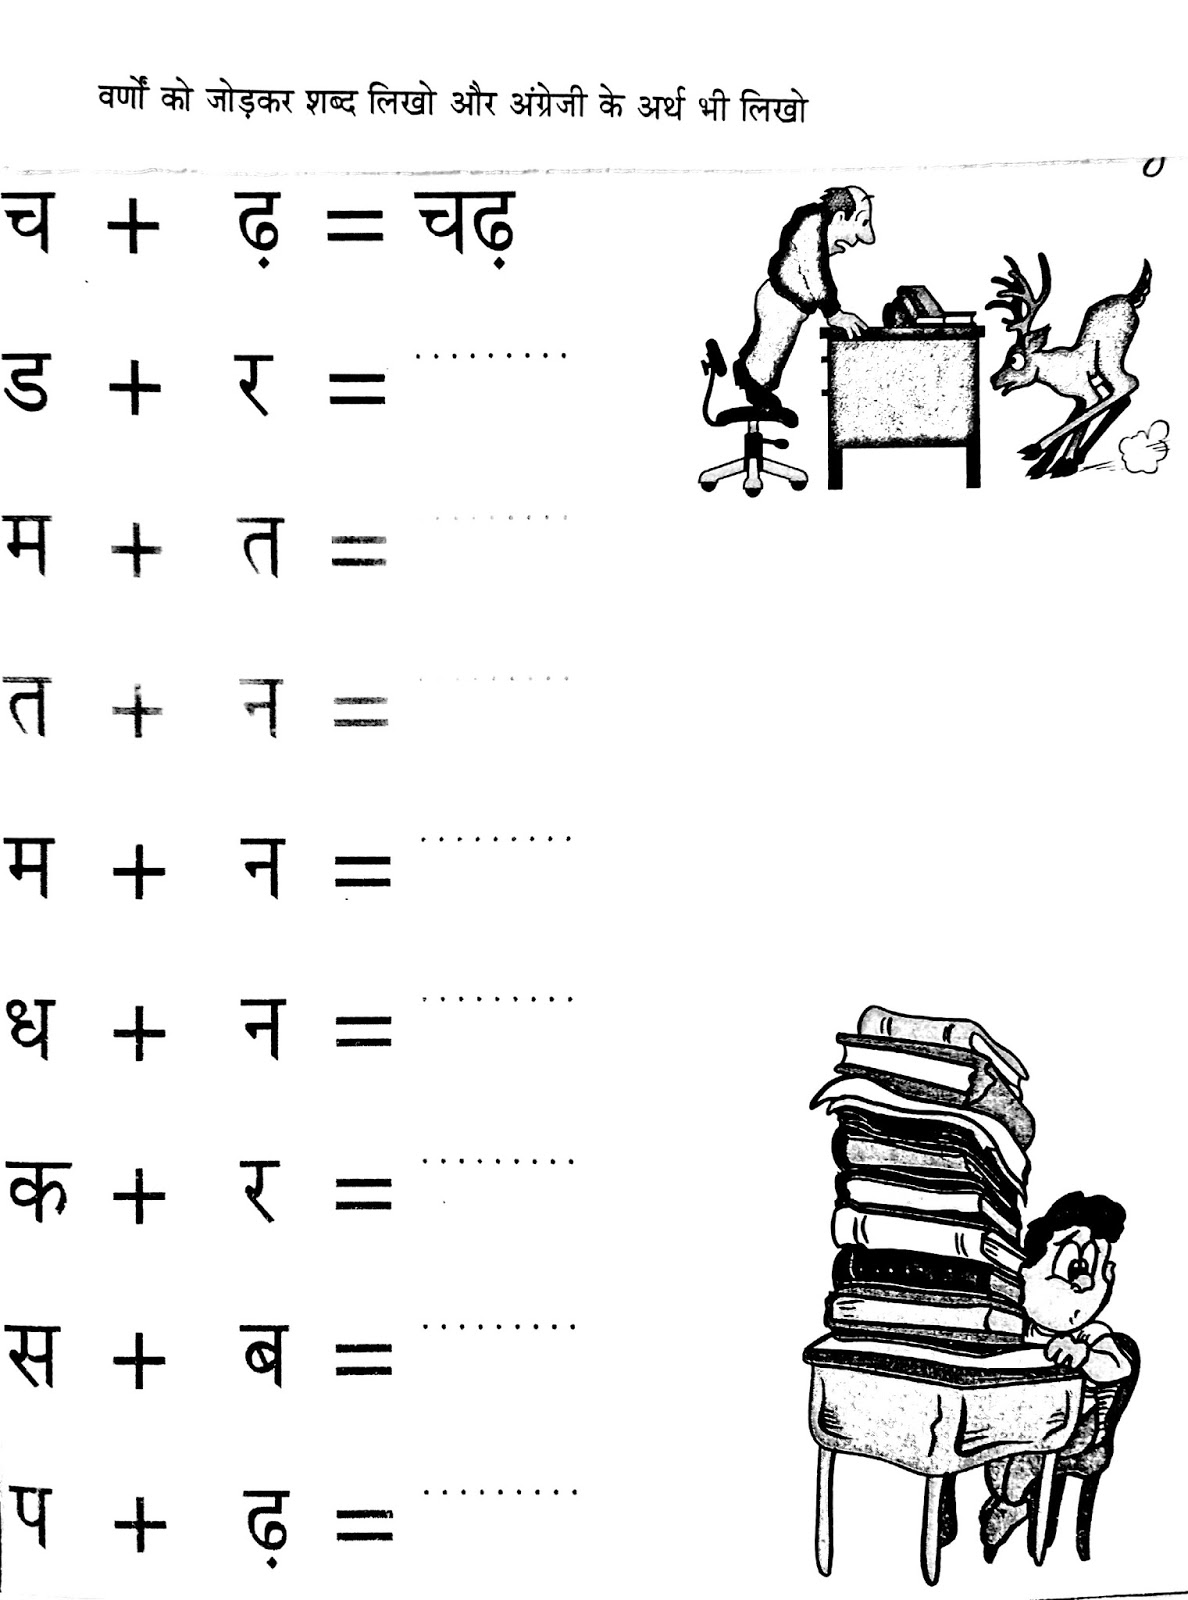 Printable Hindi worksheets to practice aa ki matra, ideal